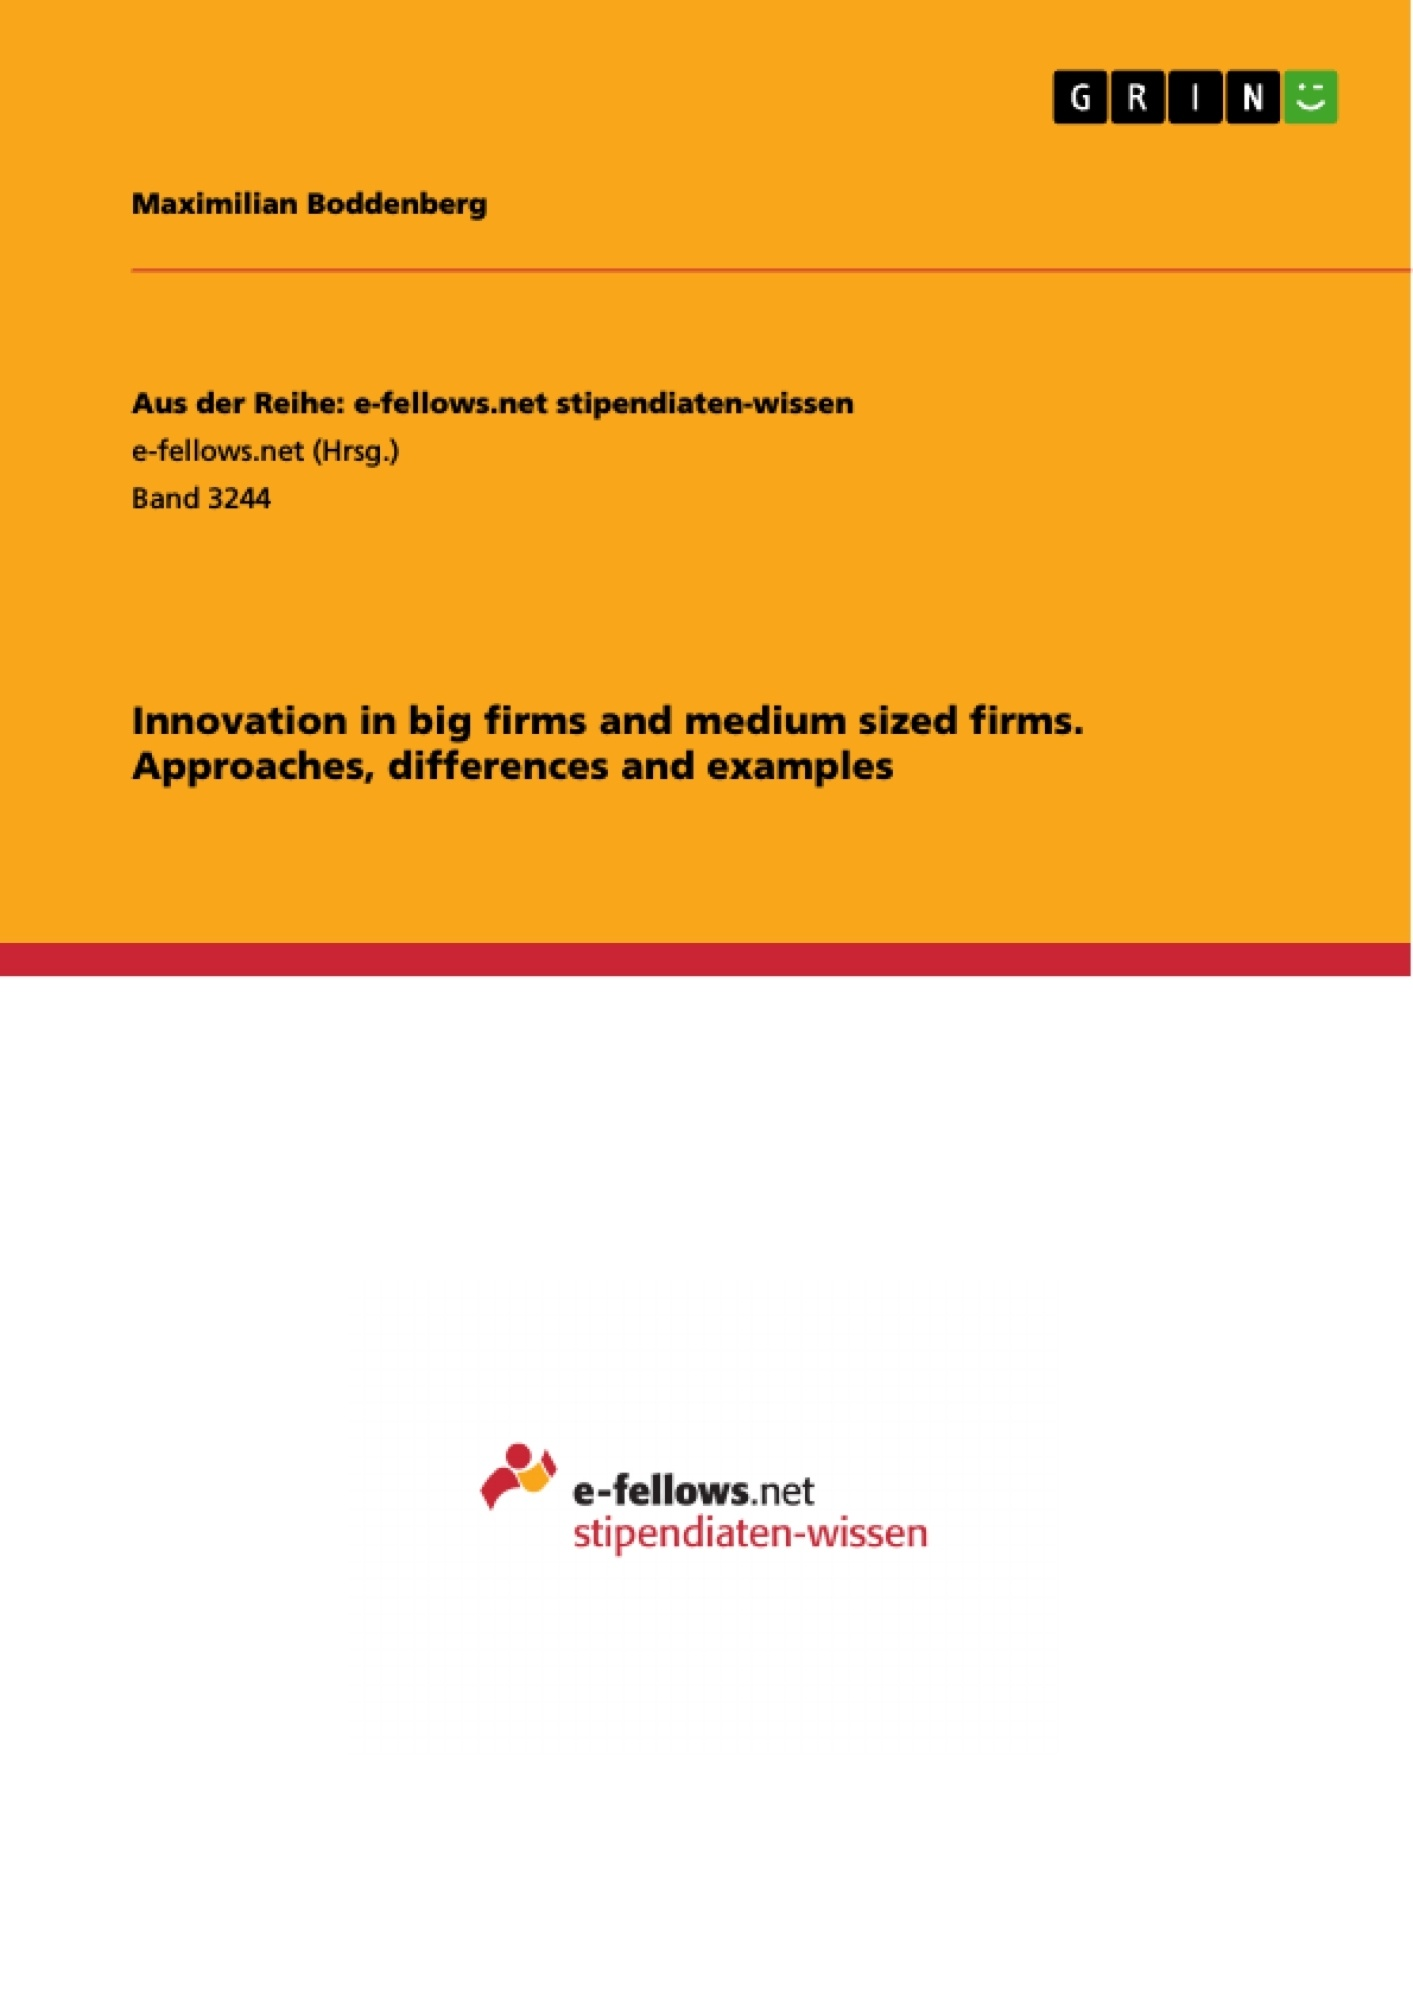 Title: Innovation in big firms and medium sized firms. Approaches, differences and examples